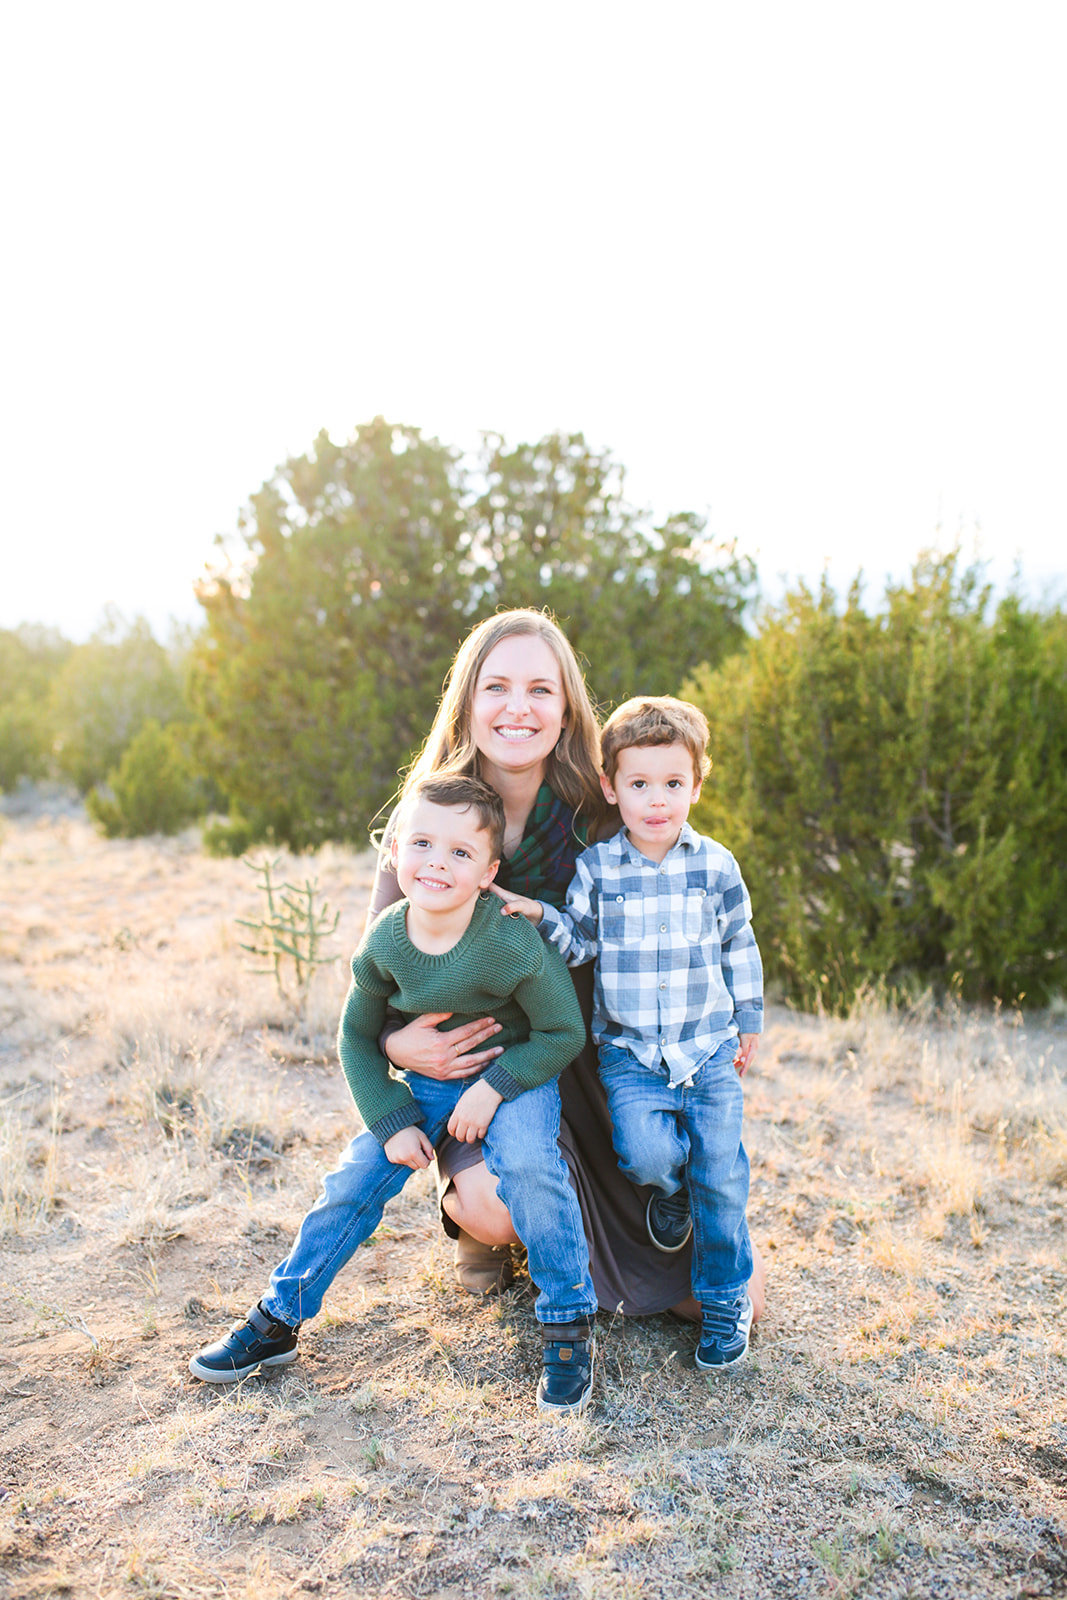 Albuquerque Family Photography_Foothills_www.tylerbrooke.com_Kate Kauffman_025